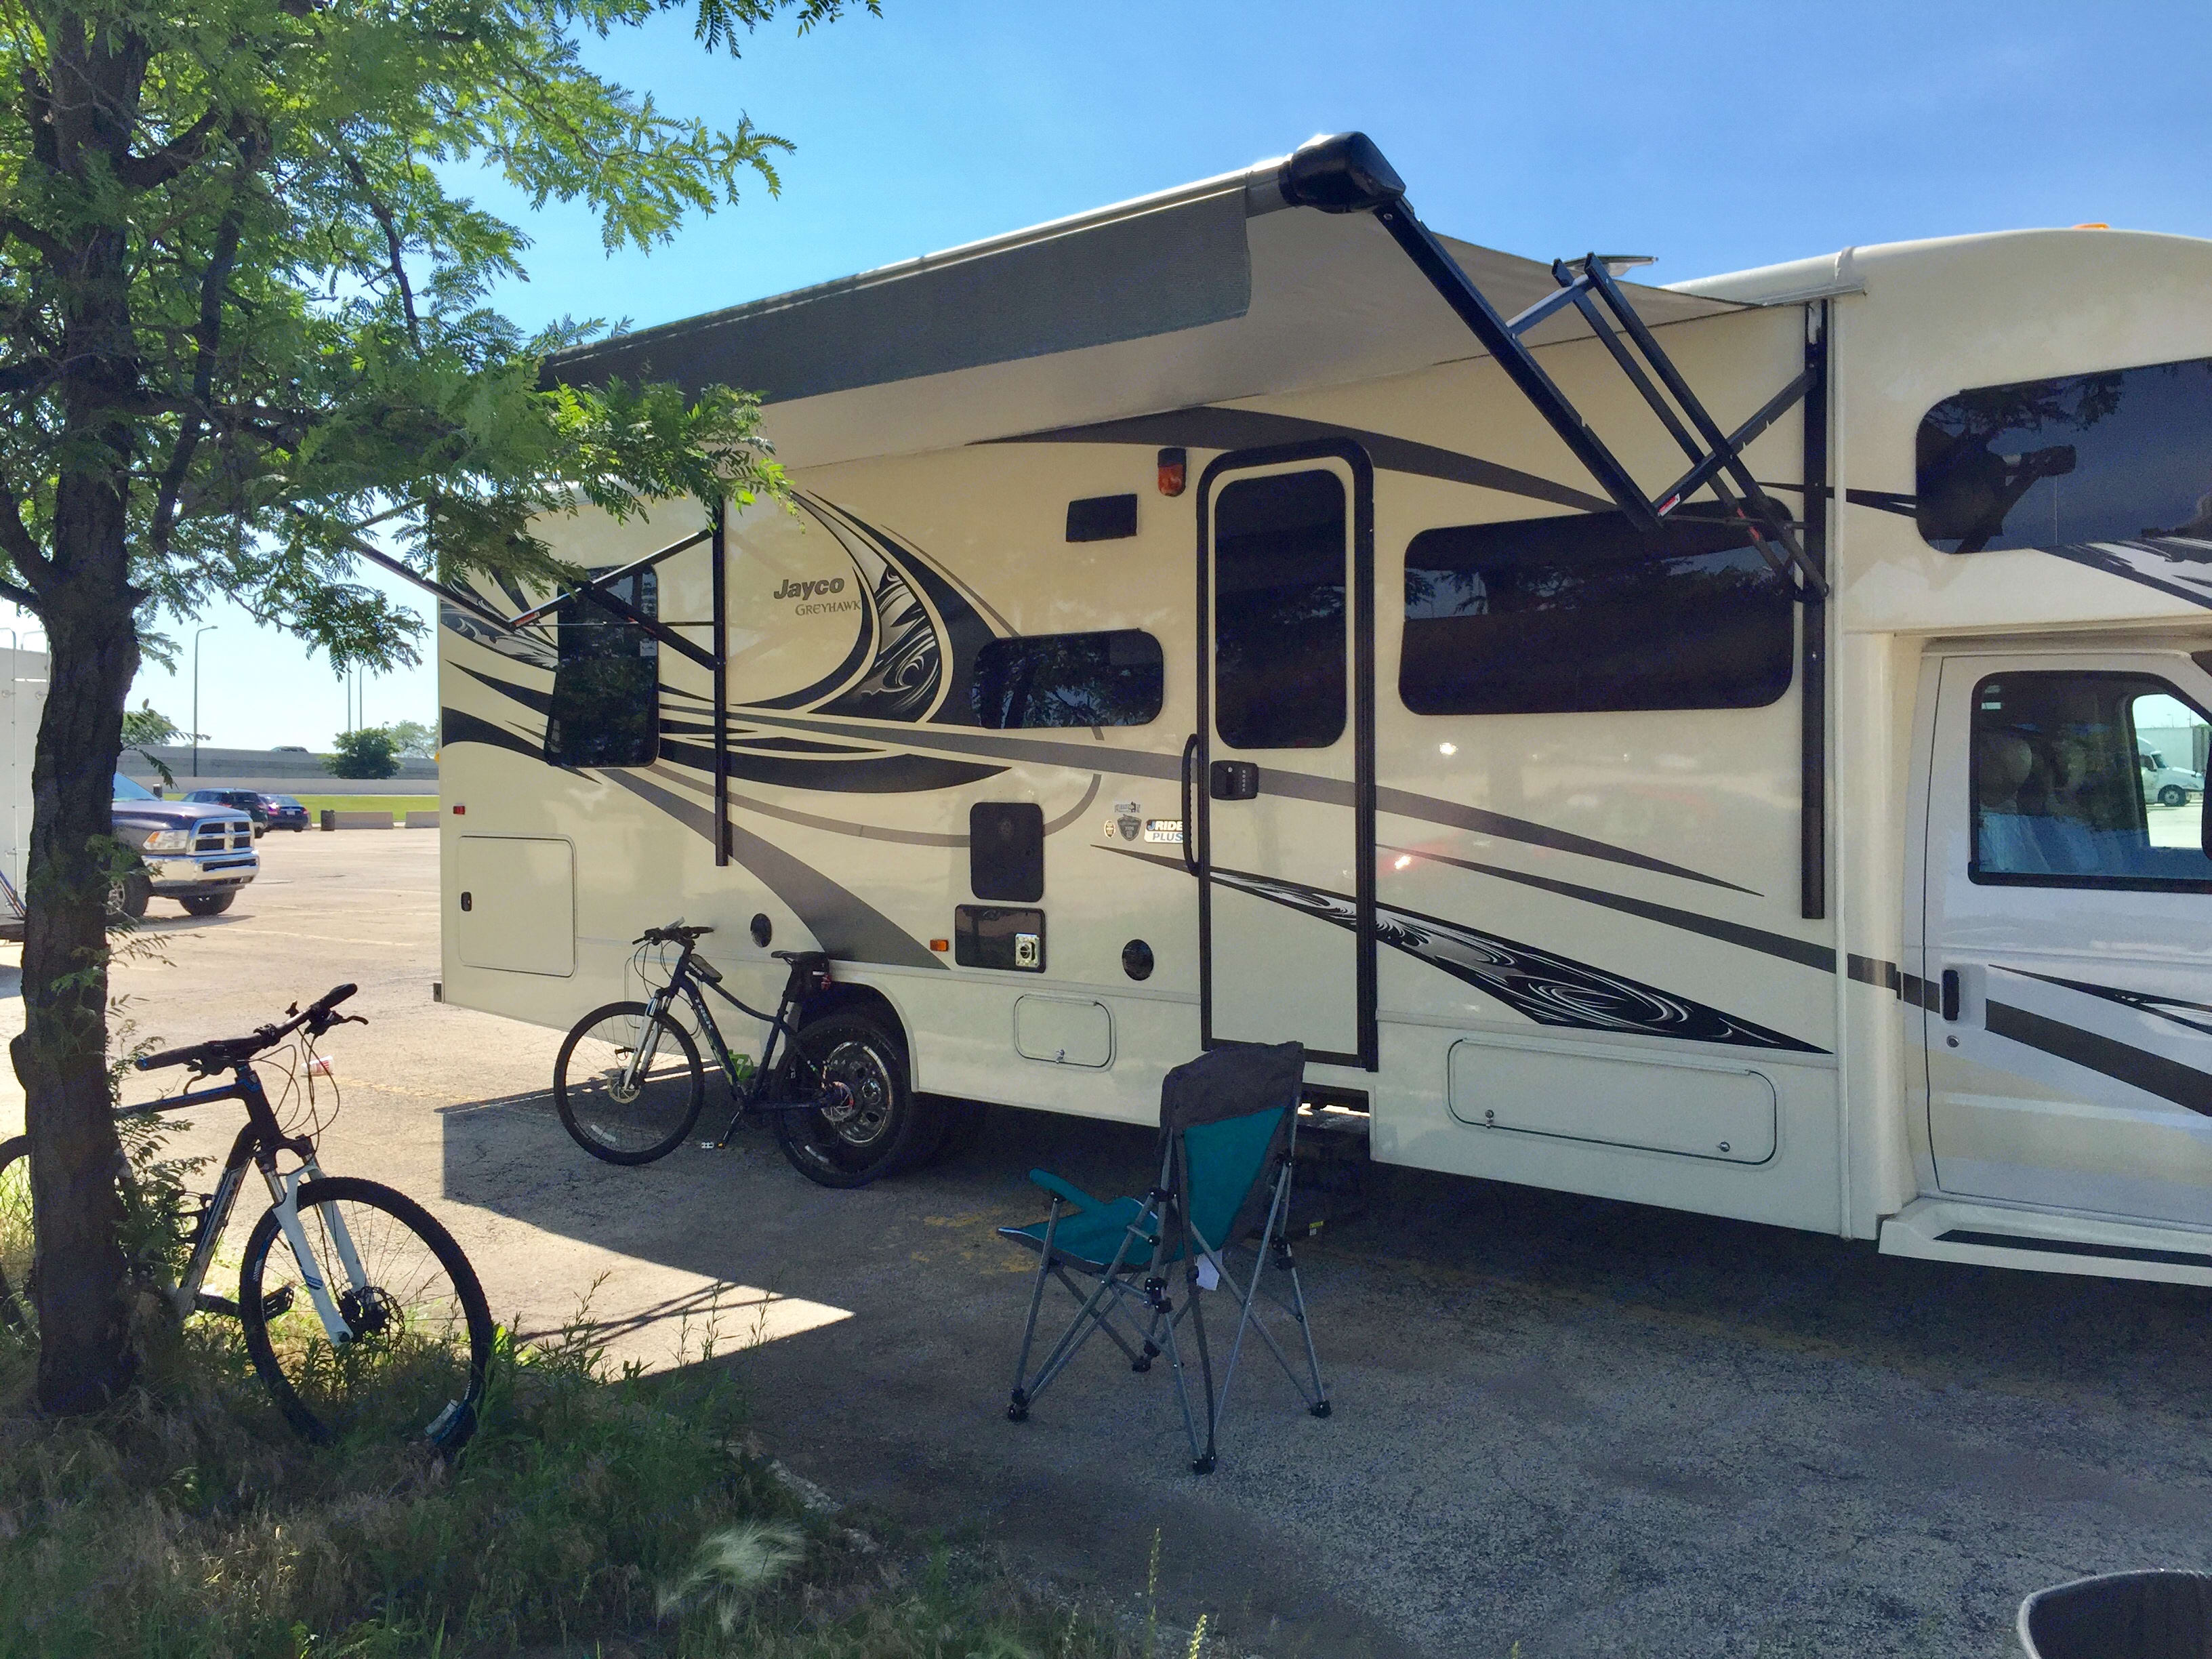 Take a break in the shade of the awning. Jayco Greyhawk 2017